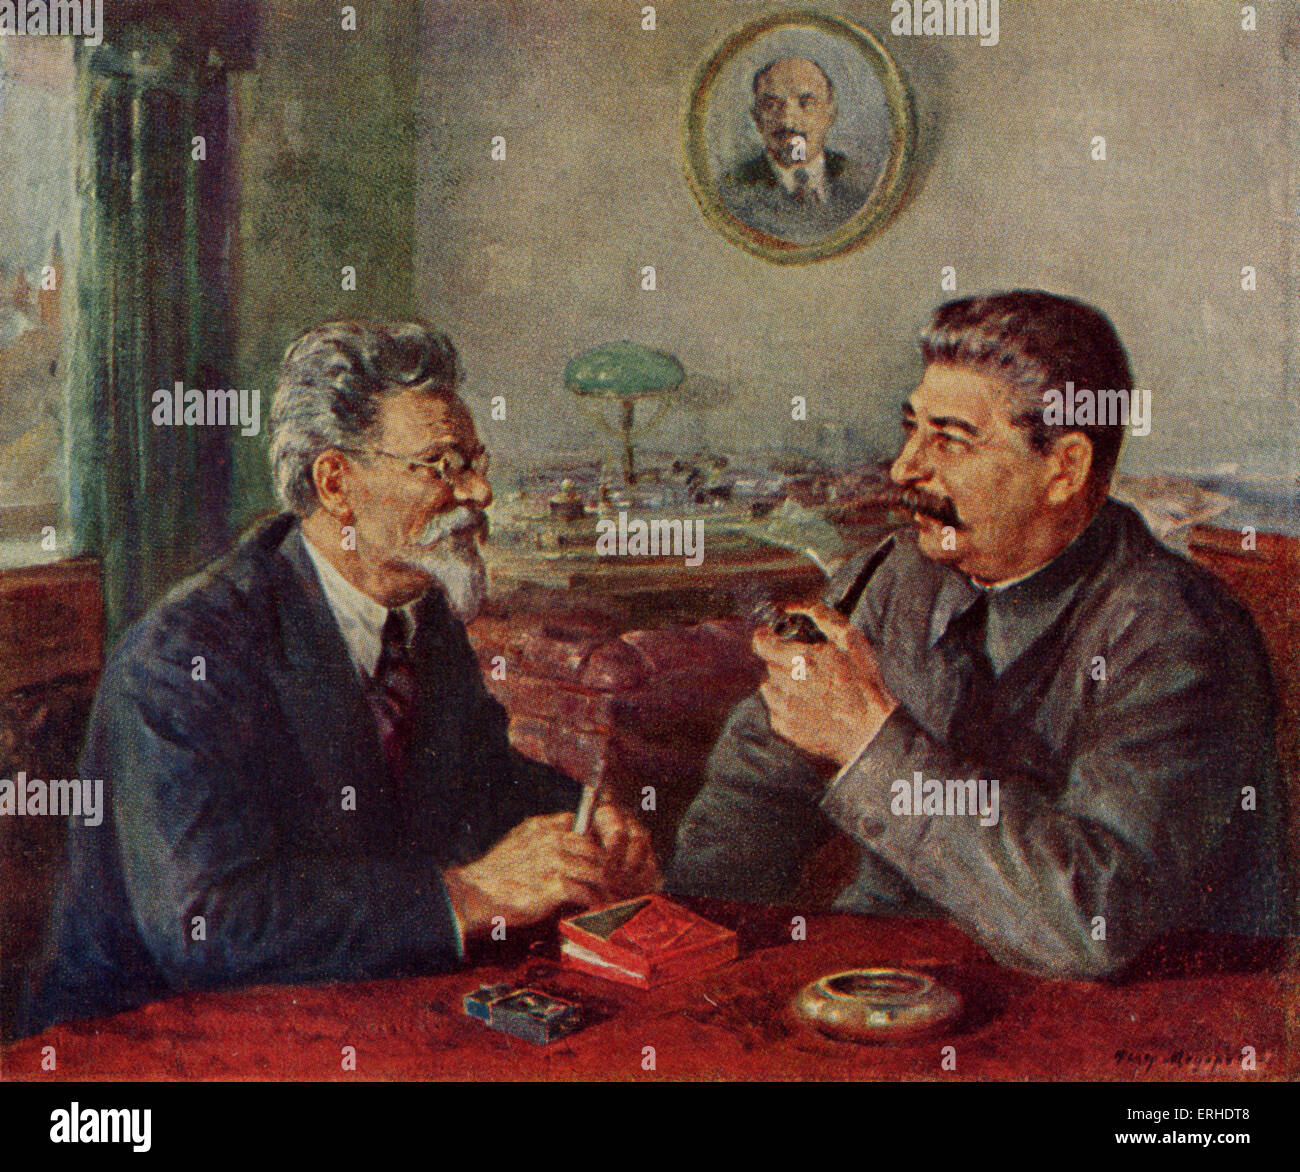 Joseph Stalin and Mikhail Kalinin in conversation. Portrait of Stalin can be seen in background. (Stalin: 1879-1953) - Stock Image